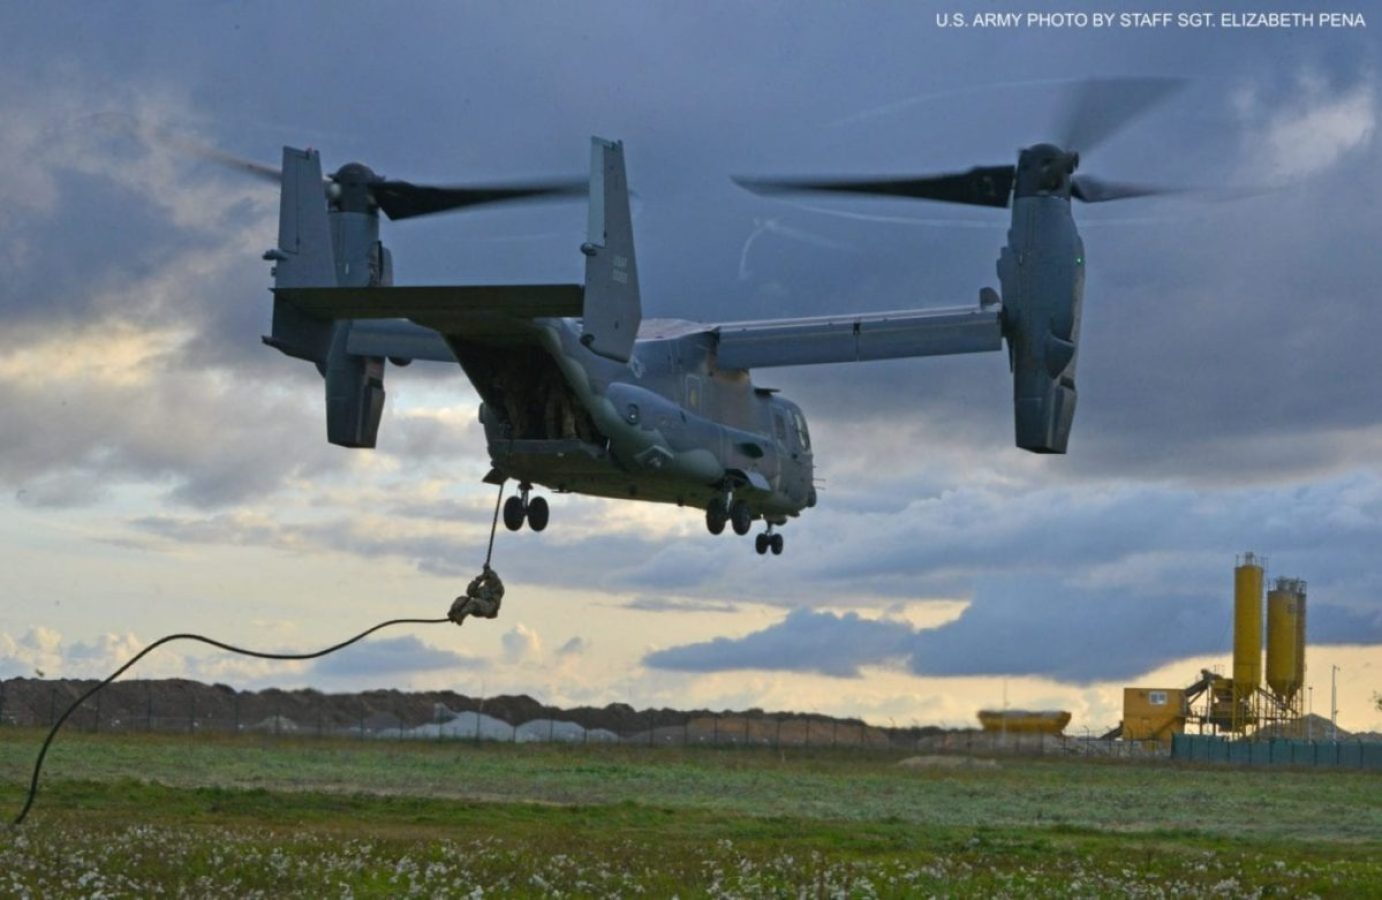 Estonian special operations forces operator prepares to be hoisted up to a U.S. Air Force CV-22 Osprey